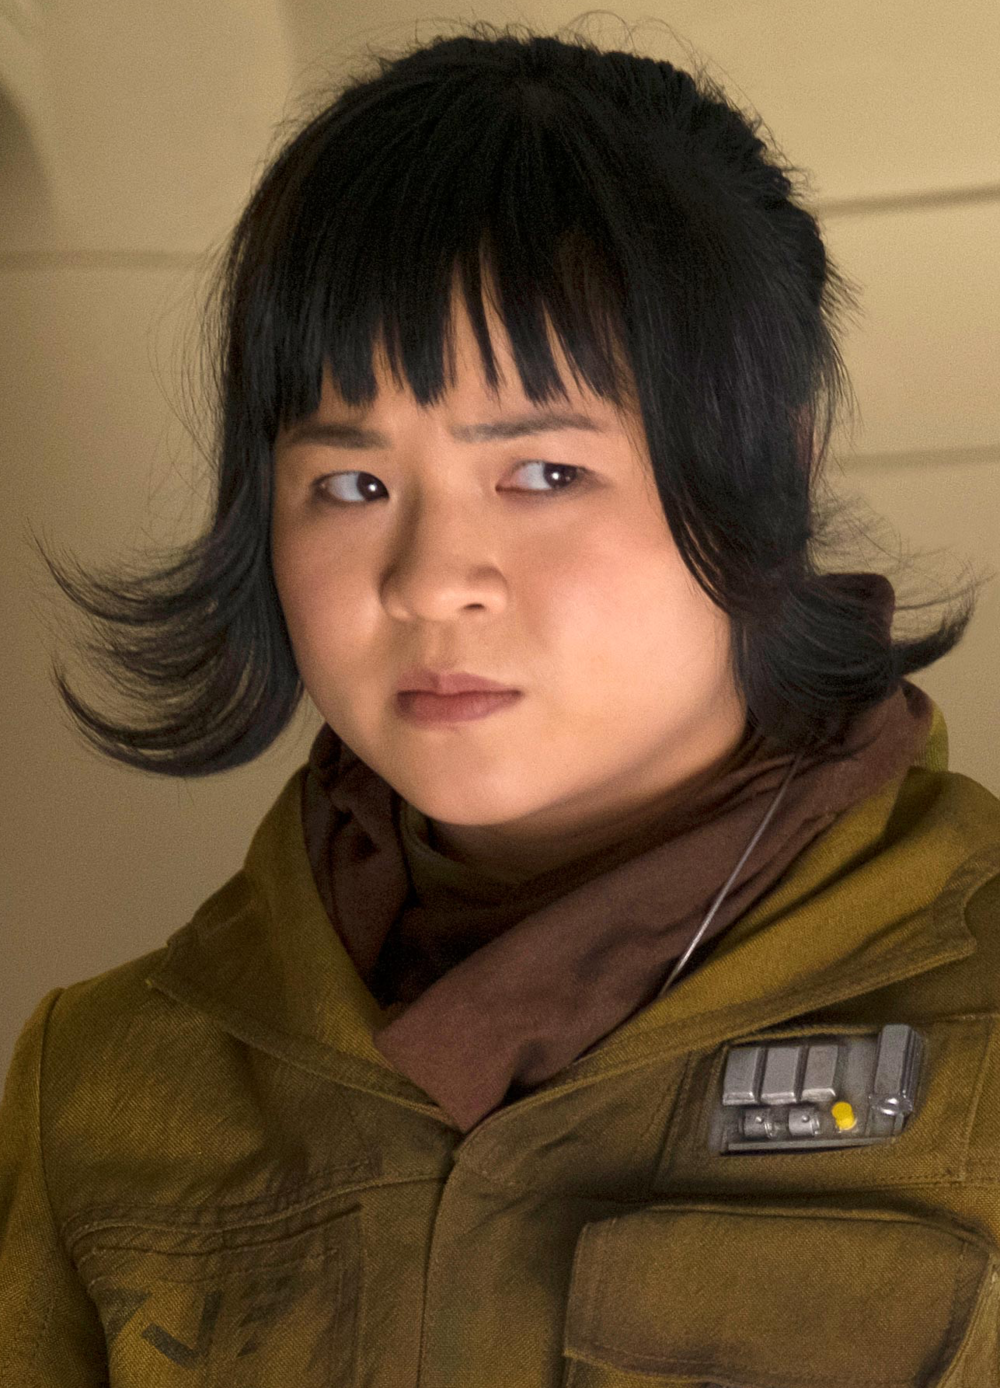 This is a copyrighted promotional image of Rose Tico. It is believed that the copyright holder has granted permission for use under the fair use provision of United States copyright law. Source: The Last Jedi: With Finn and Rose, a 'big deal' is redeemed by 'a nobody' EW via Wookieepedia